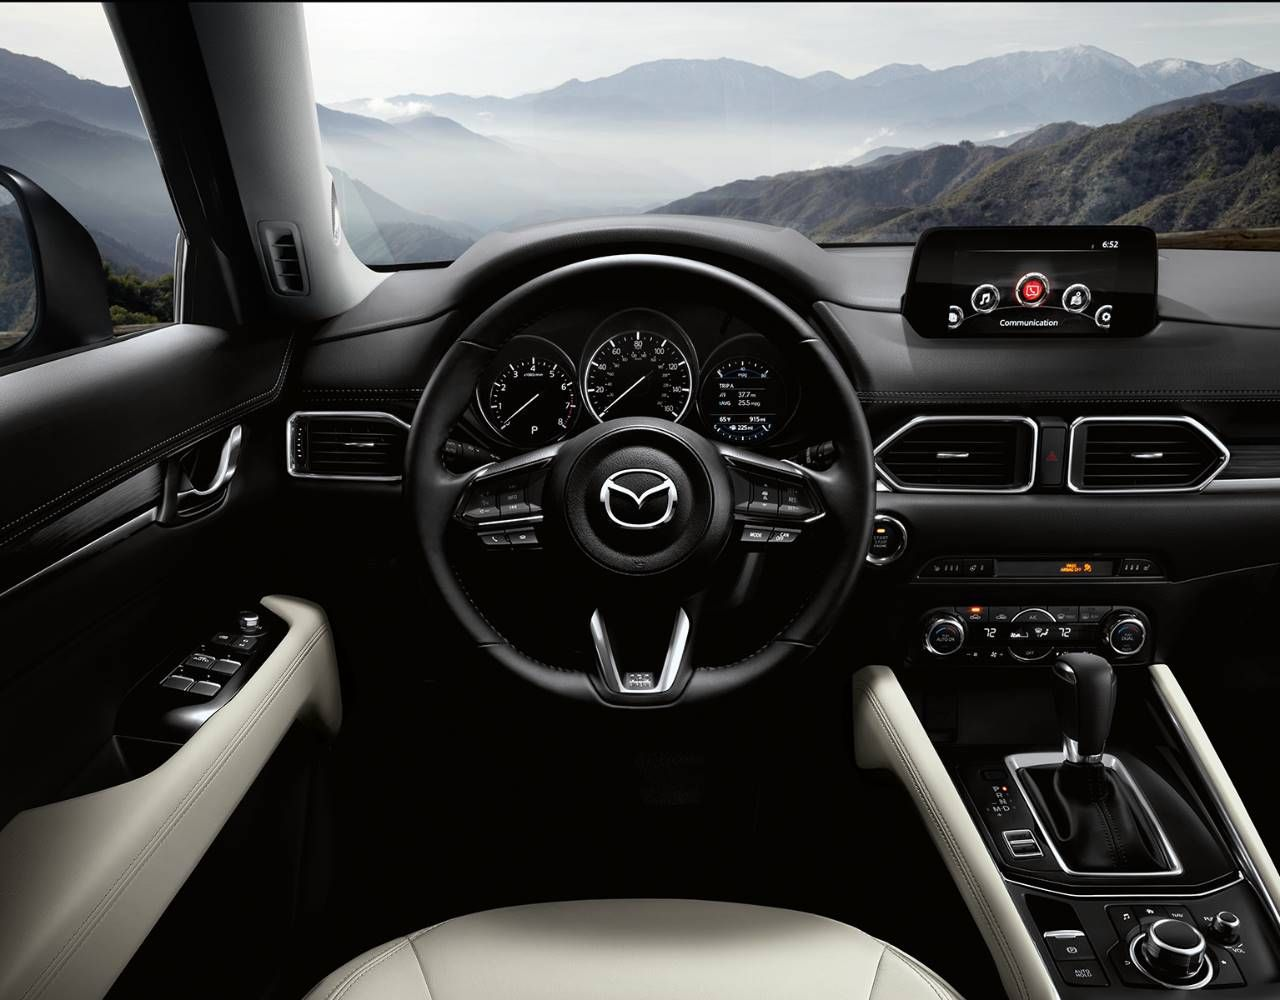 The 2018 Mazda Cx 5 Is The Product Of Engineer And Designer Working In Unison Daring To Reimagine The Automobile As A Whole Explore The All New Mazda Cx 5 Her